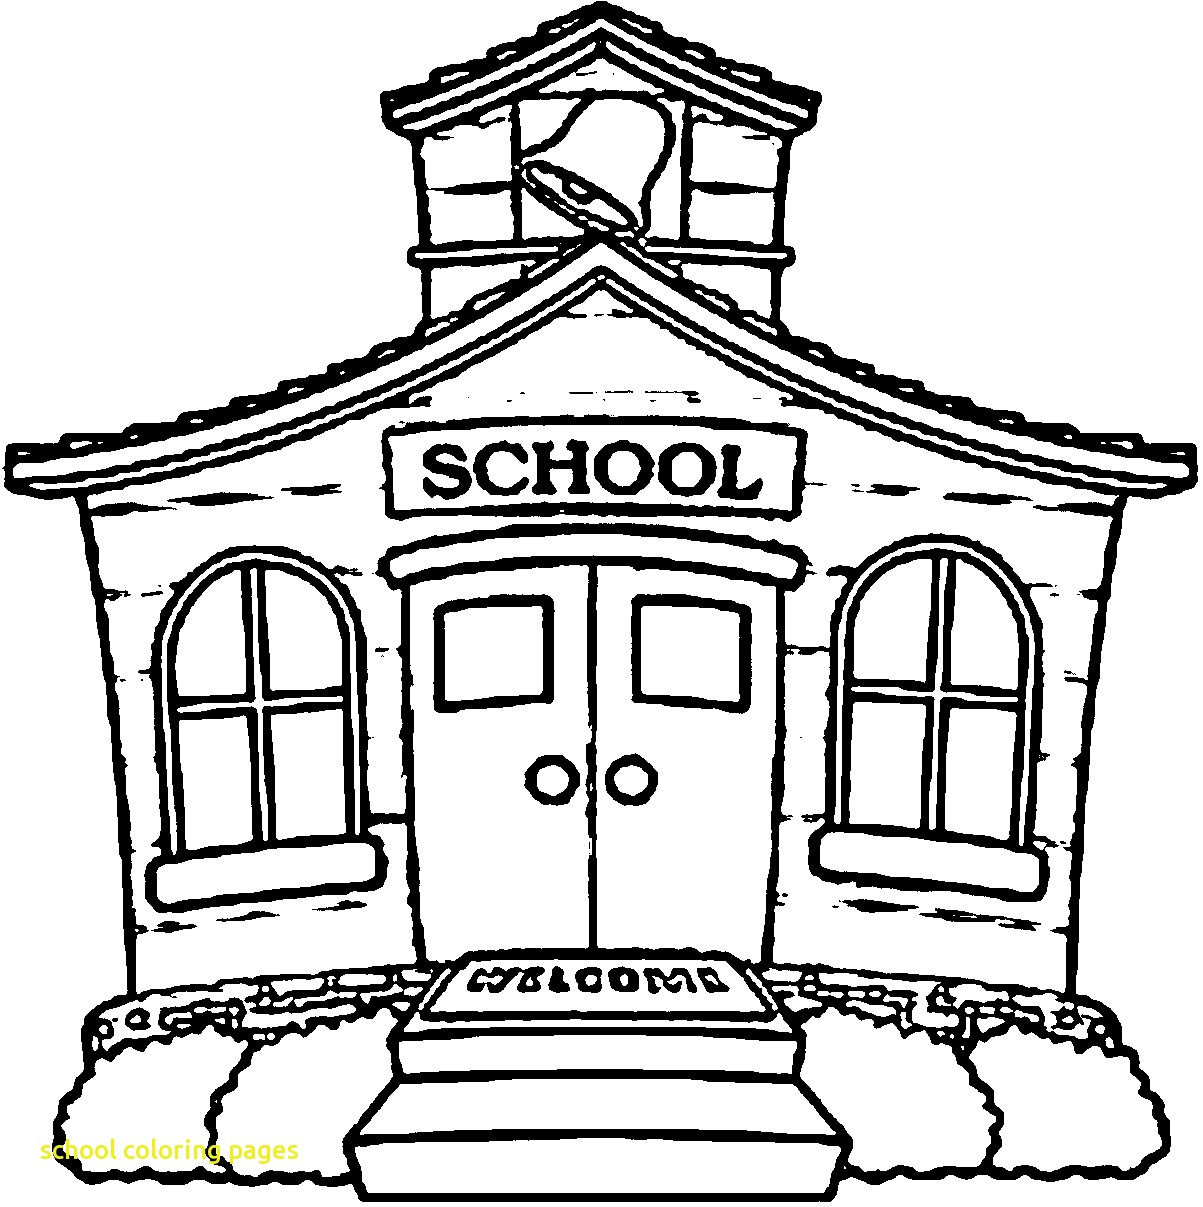 School Coloring Pages with 35 Coloring Page A School Small School Collection Of Fresh First Day School Coloring Sheets Free Printable Pages Kids Printable